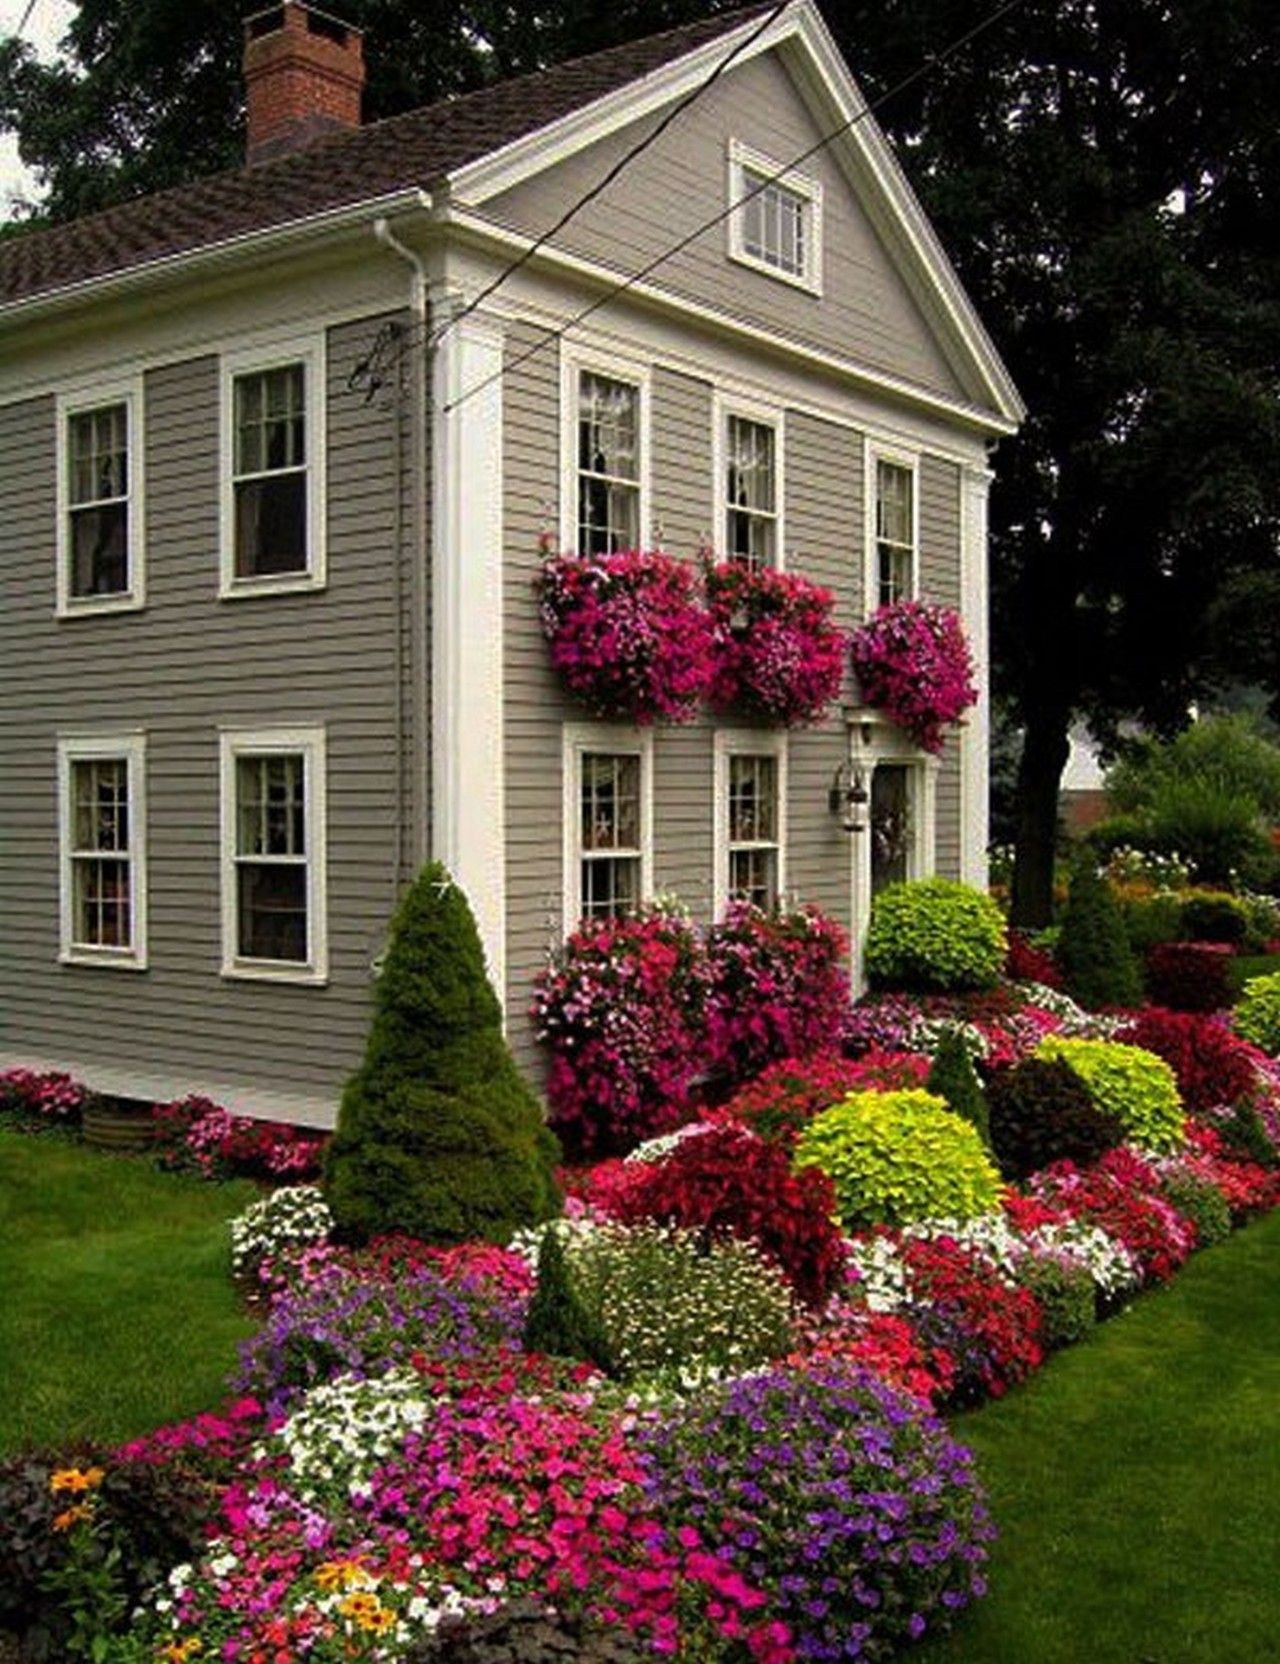 Awesome landscaping ideas for front yards composition for Flower ideas for front yard